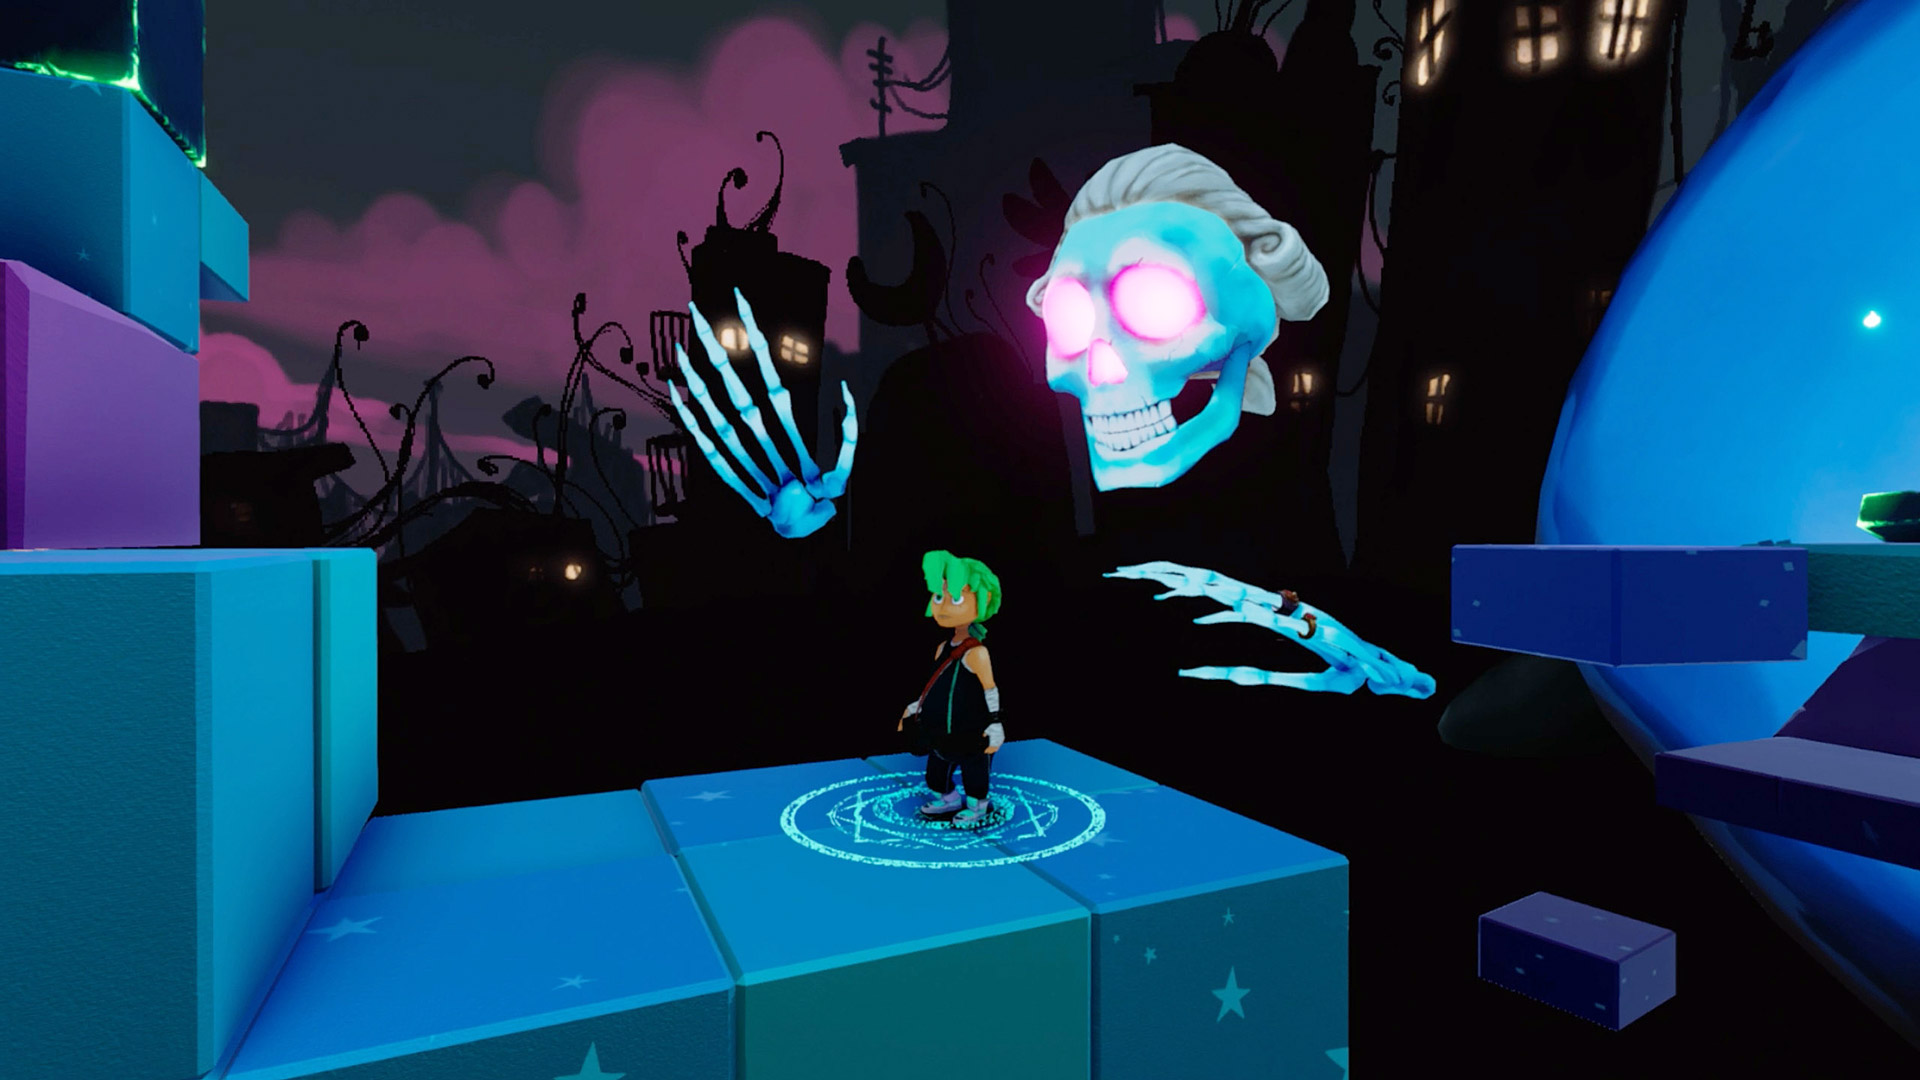 Preview: 'Carly & the Reaperman' VR Plays Like a Co-op Version of 'Moss'